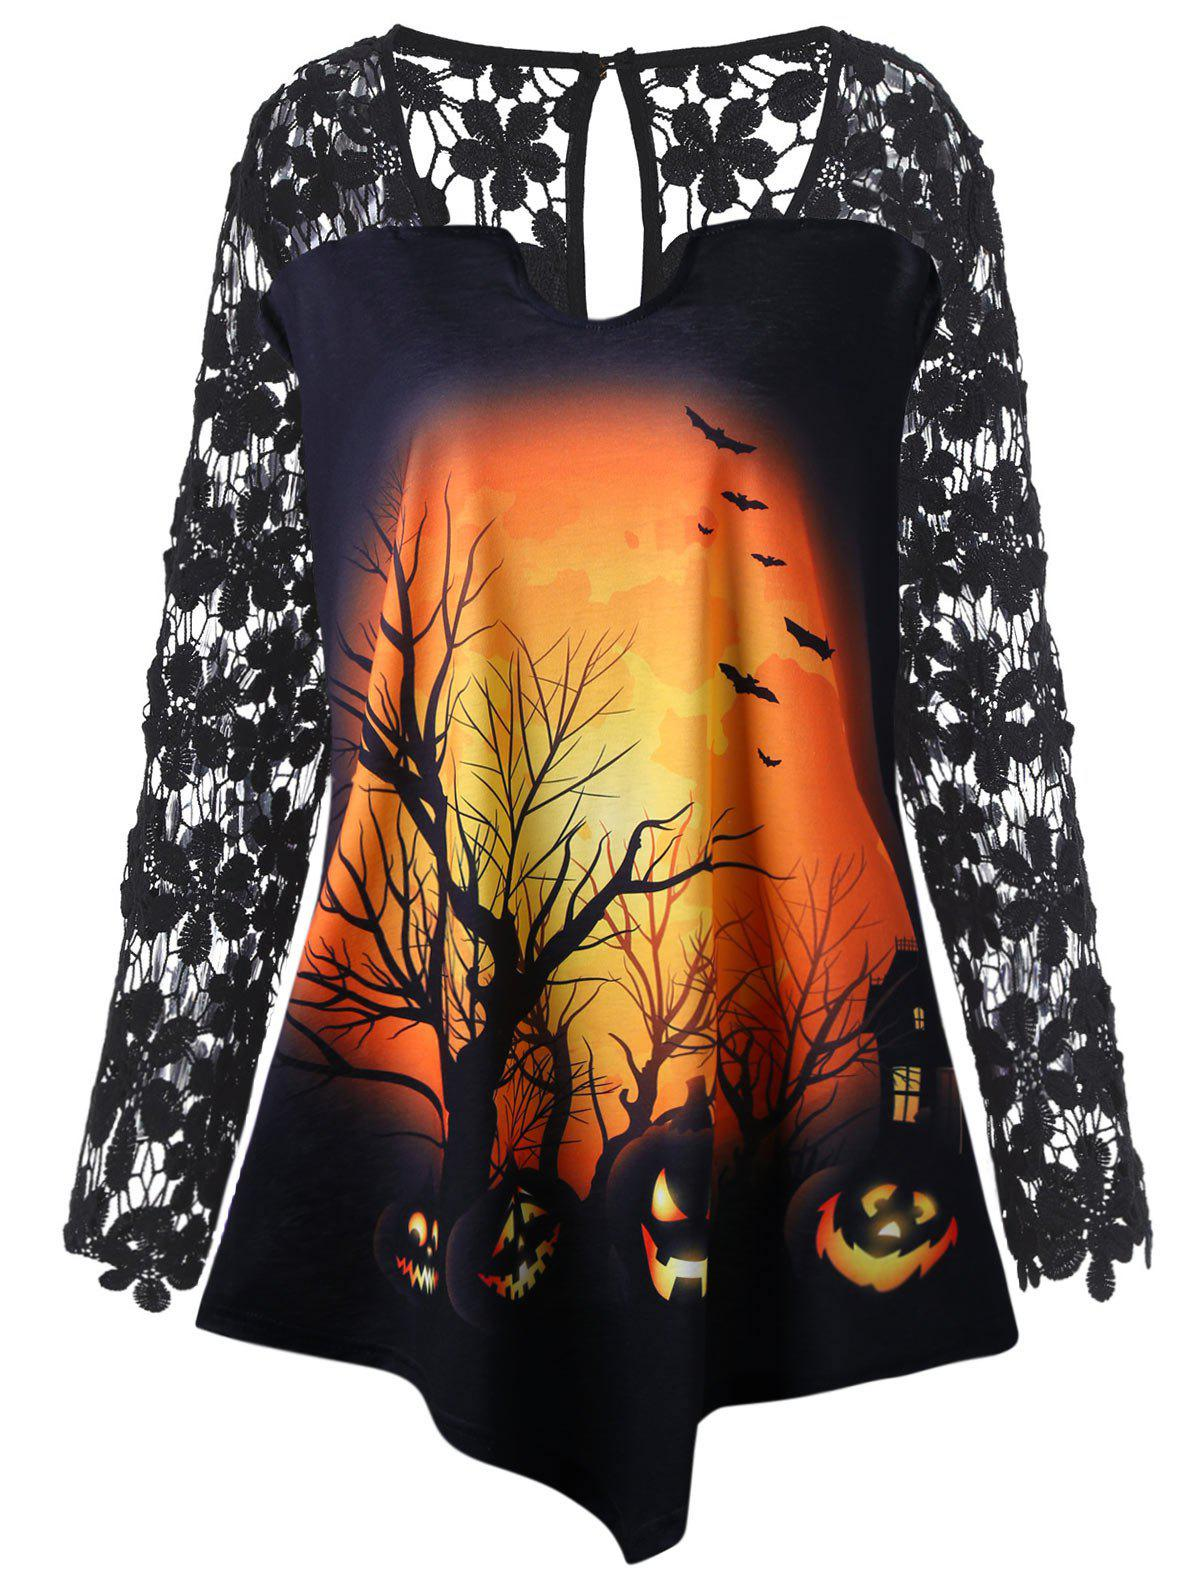 Buy Halloween Lace Insert Pumpkin Plus Size Tunic T-shirt